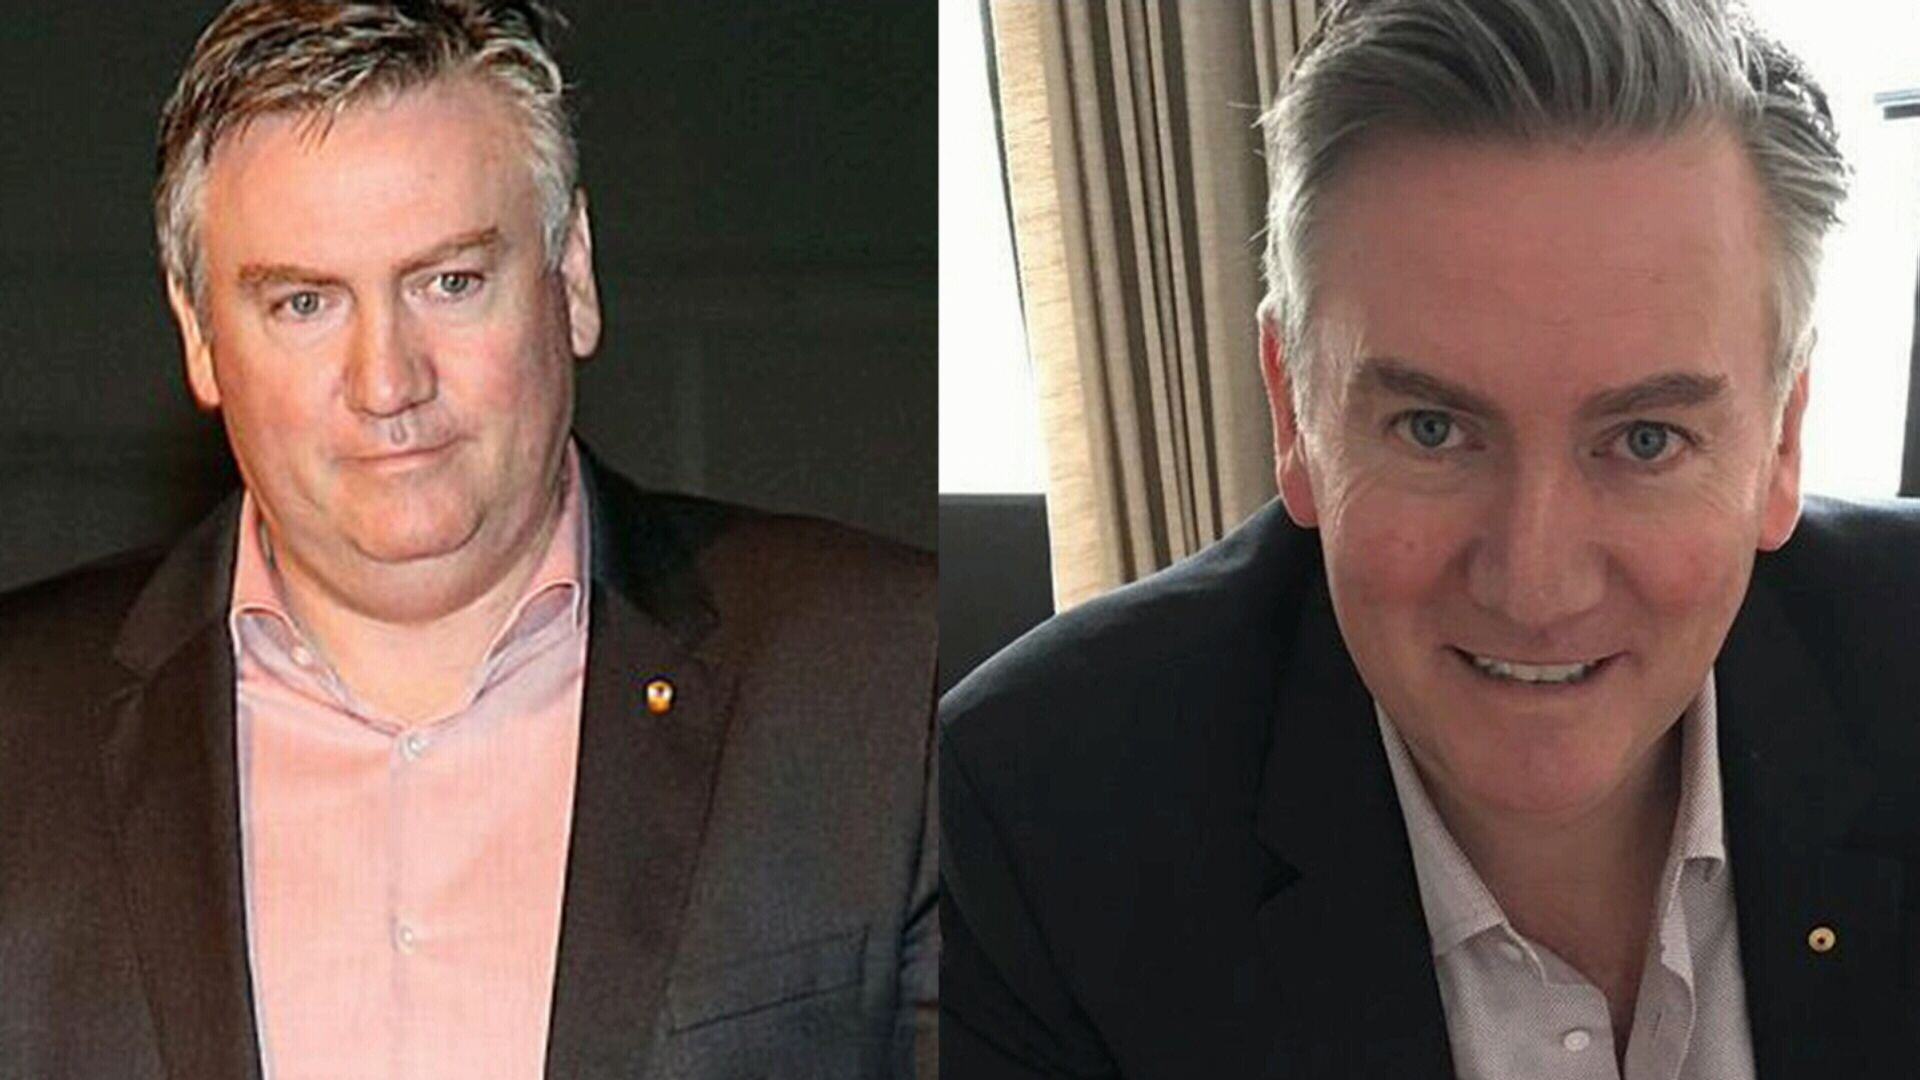 McGuire attributes Chinese herb diet to weight loss